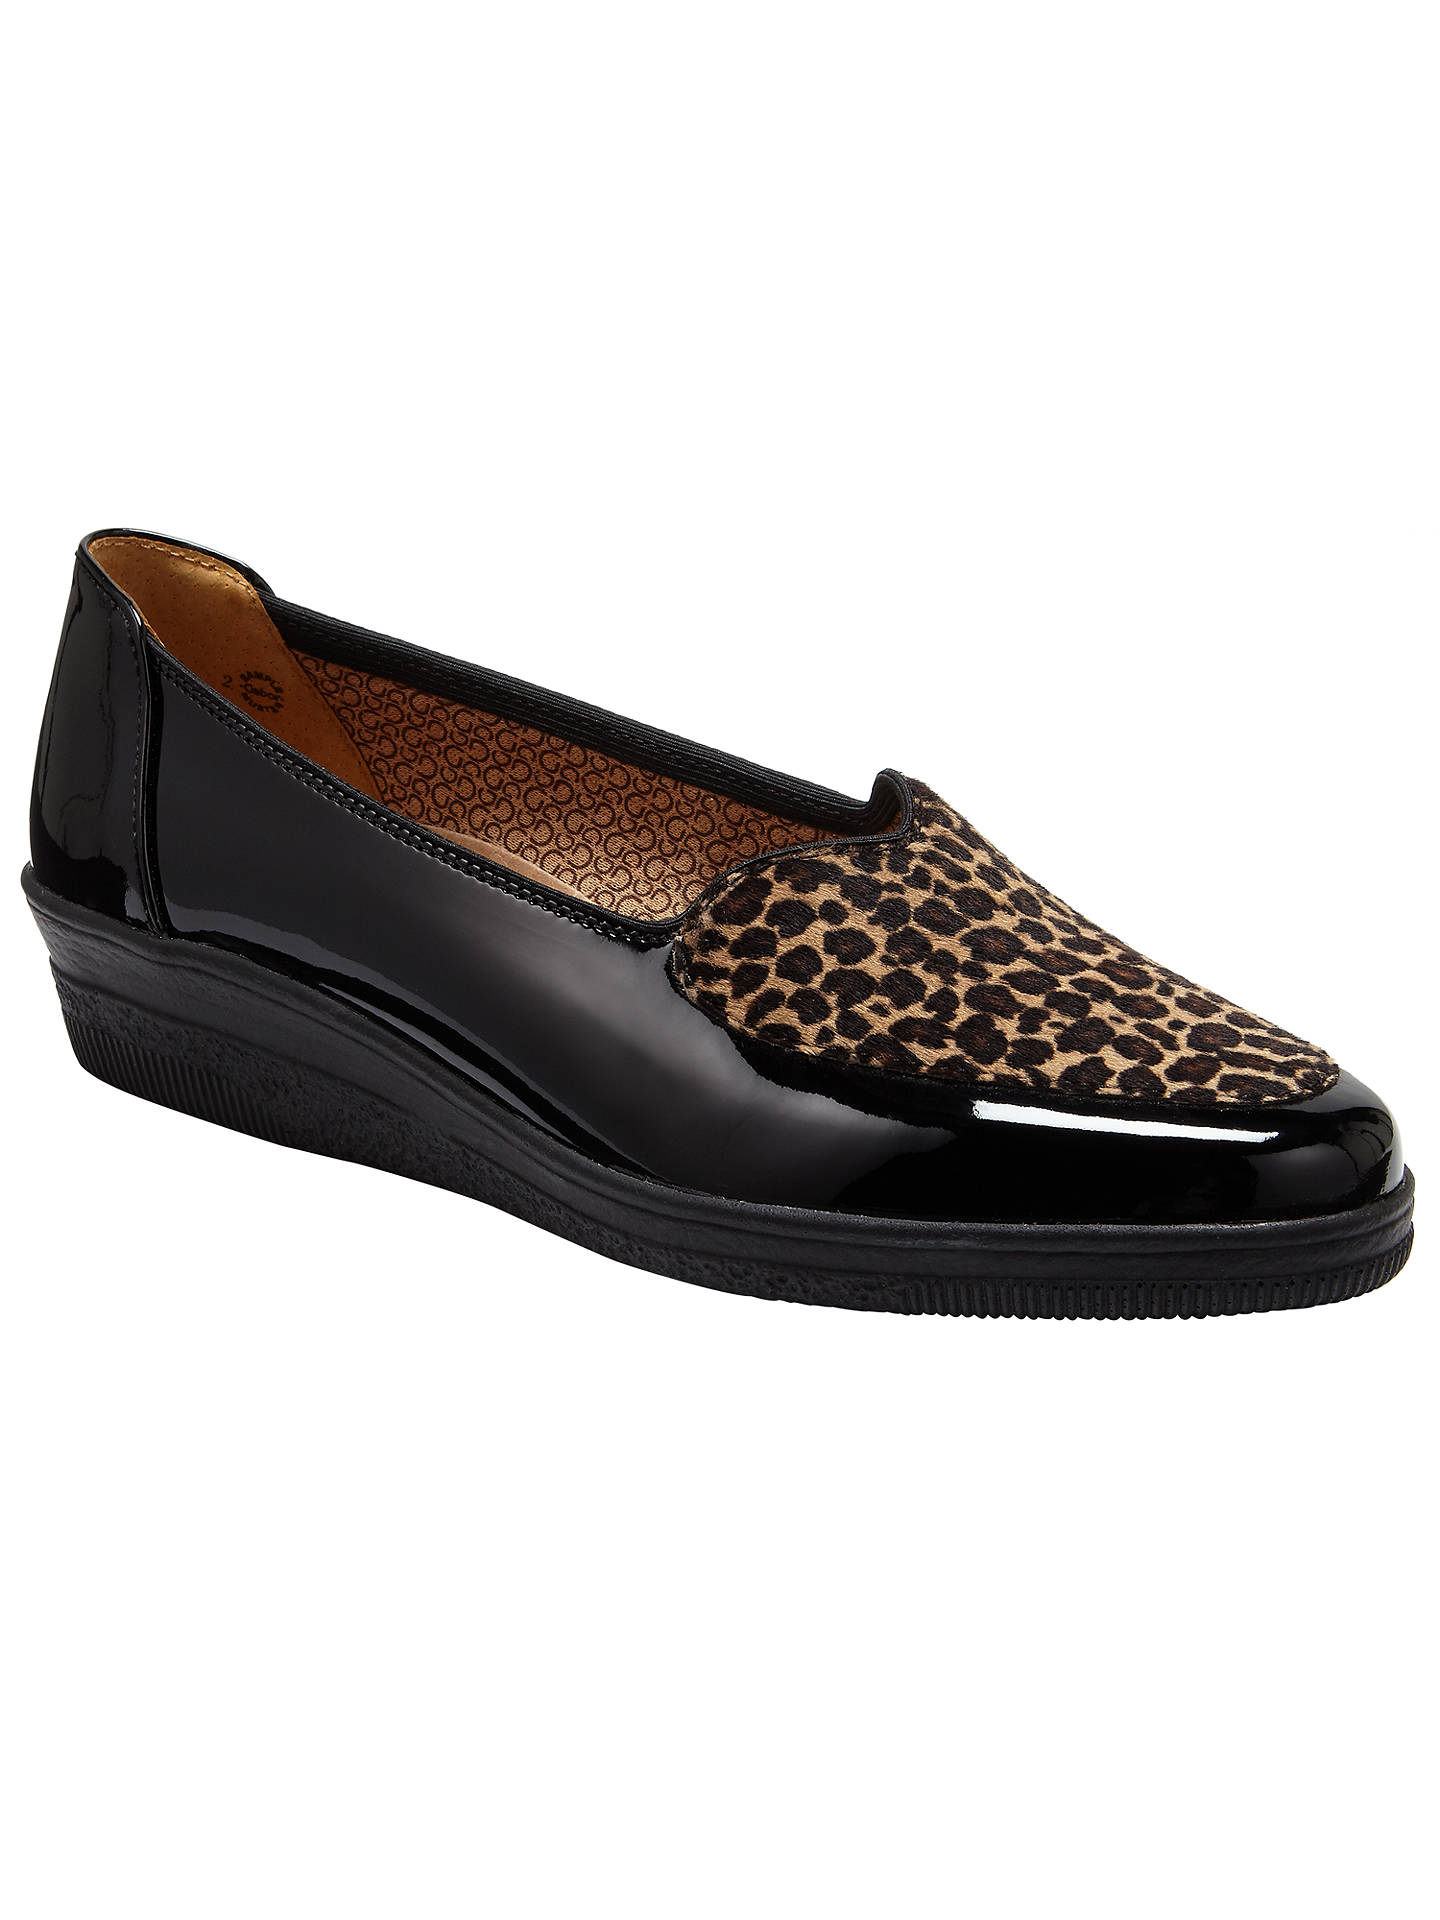 6258c052eecd Buy Gabor Blanch Wide Fit Patent Wedge Pumps, Black/Leopard, 3 Online at ...